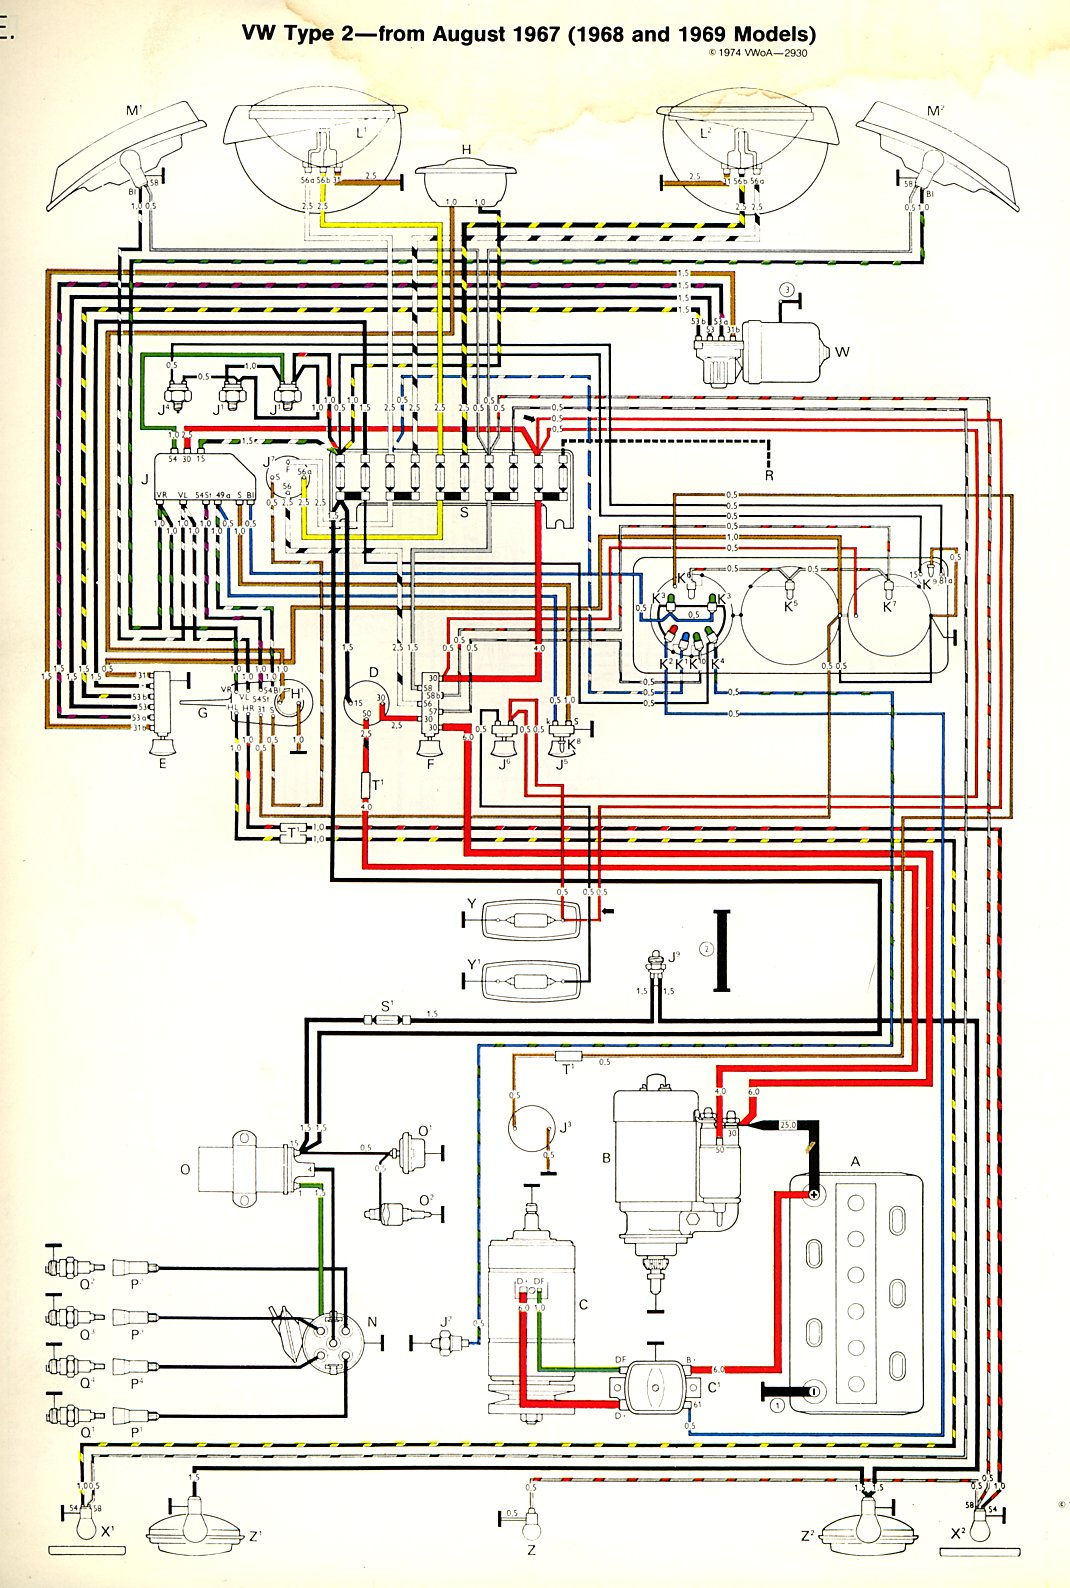 77 Vw Van Wiring Diagram Just Another Blog Headlight Dimmer Switch Thesamba Com Type 2 Diagrams Rh Light 1978 Bus